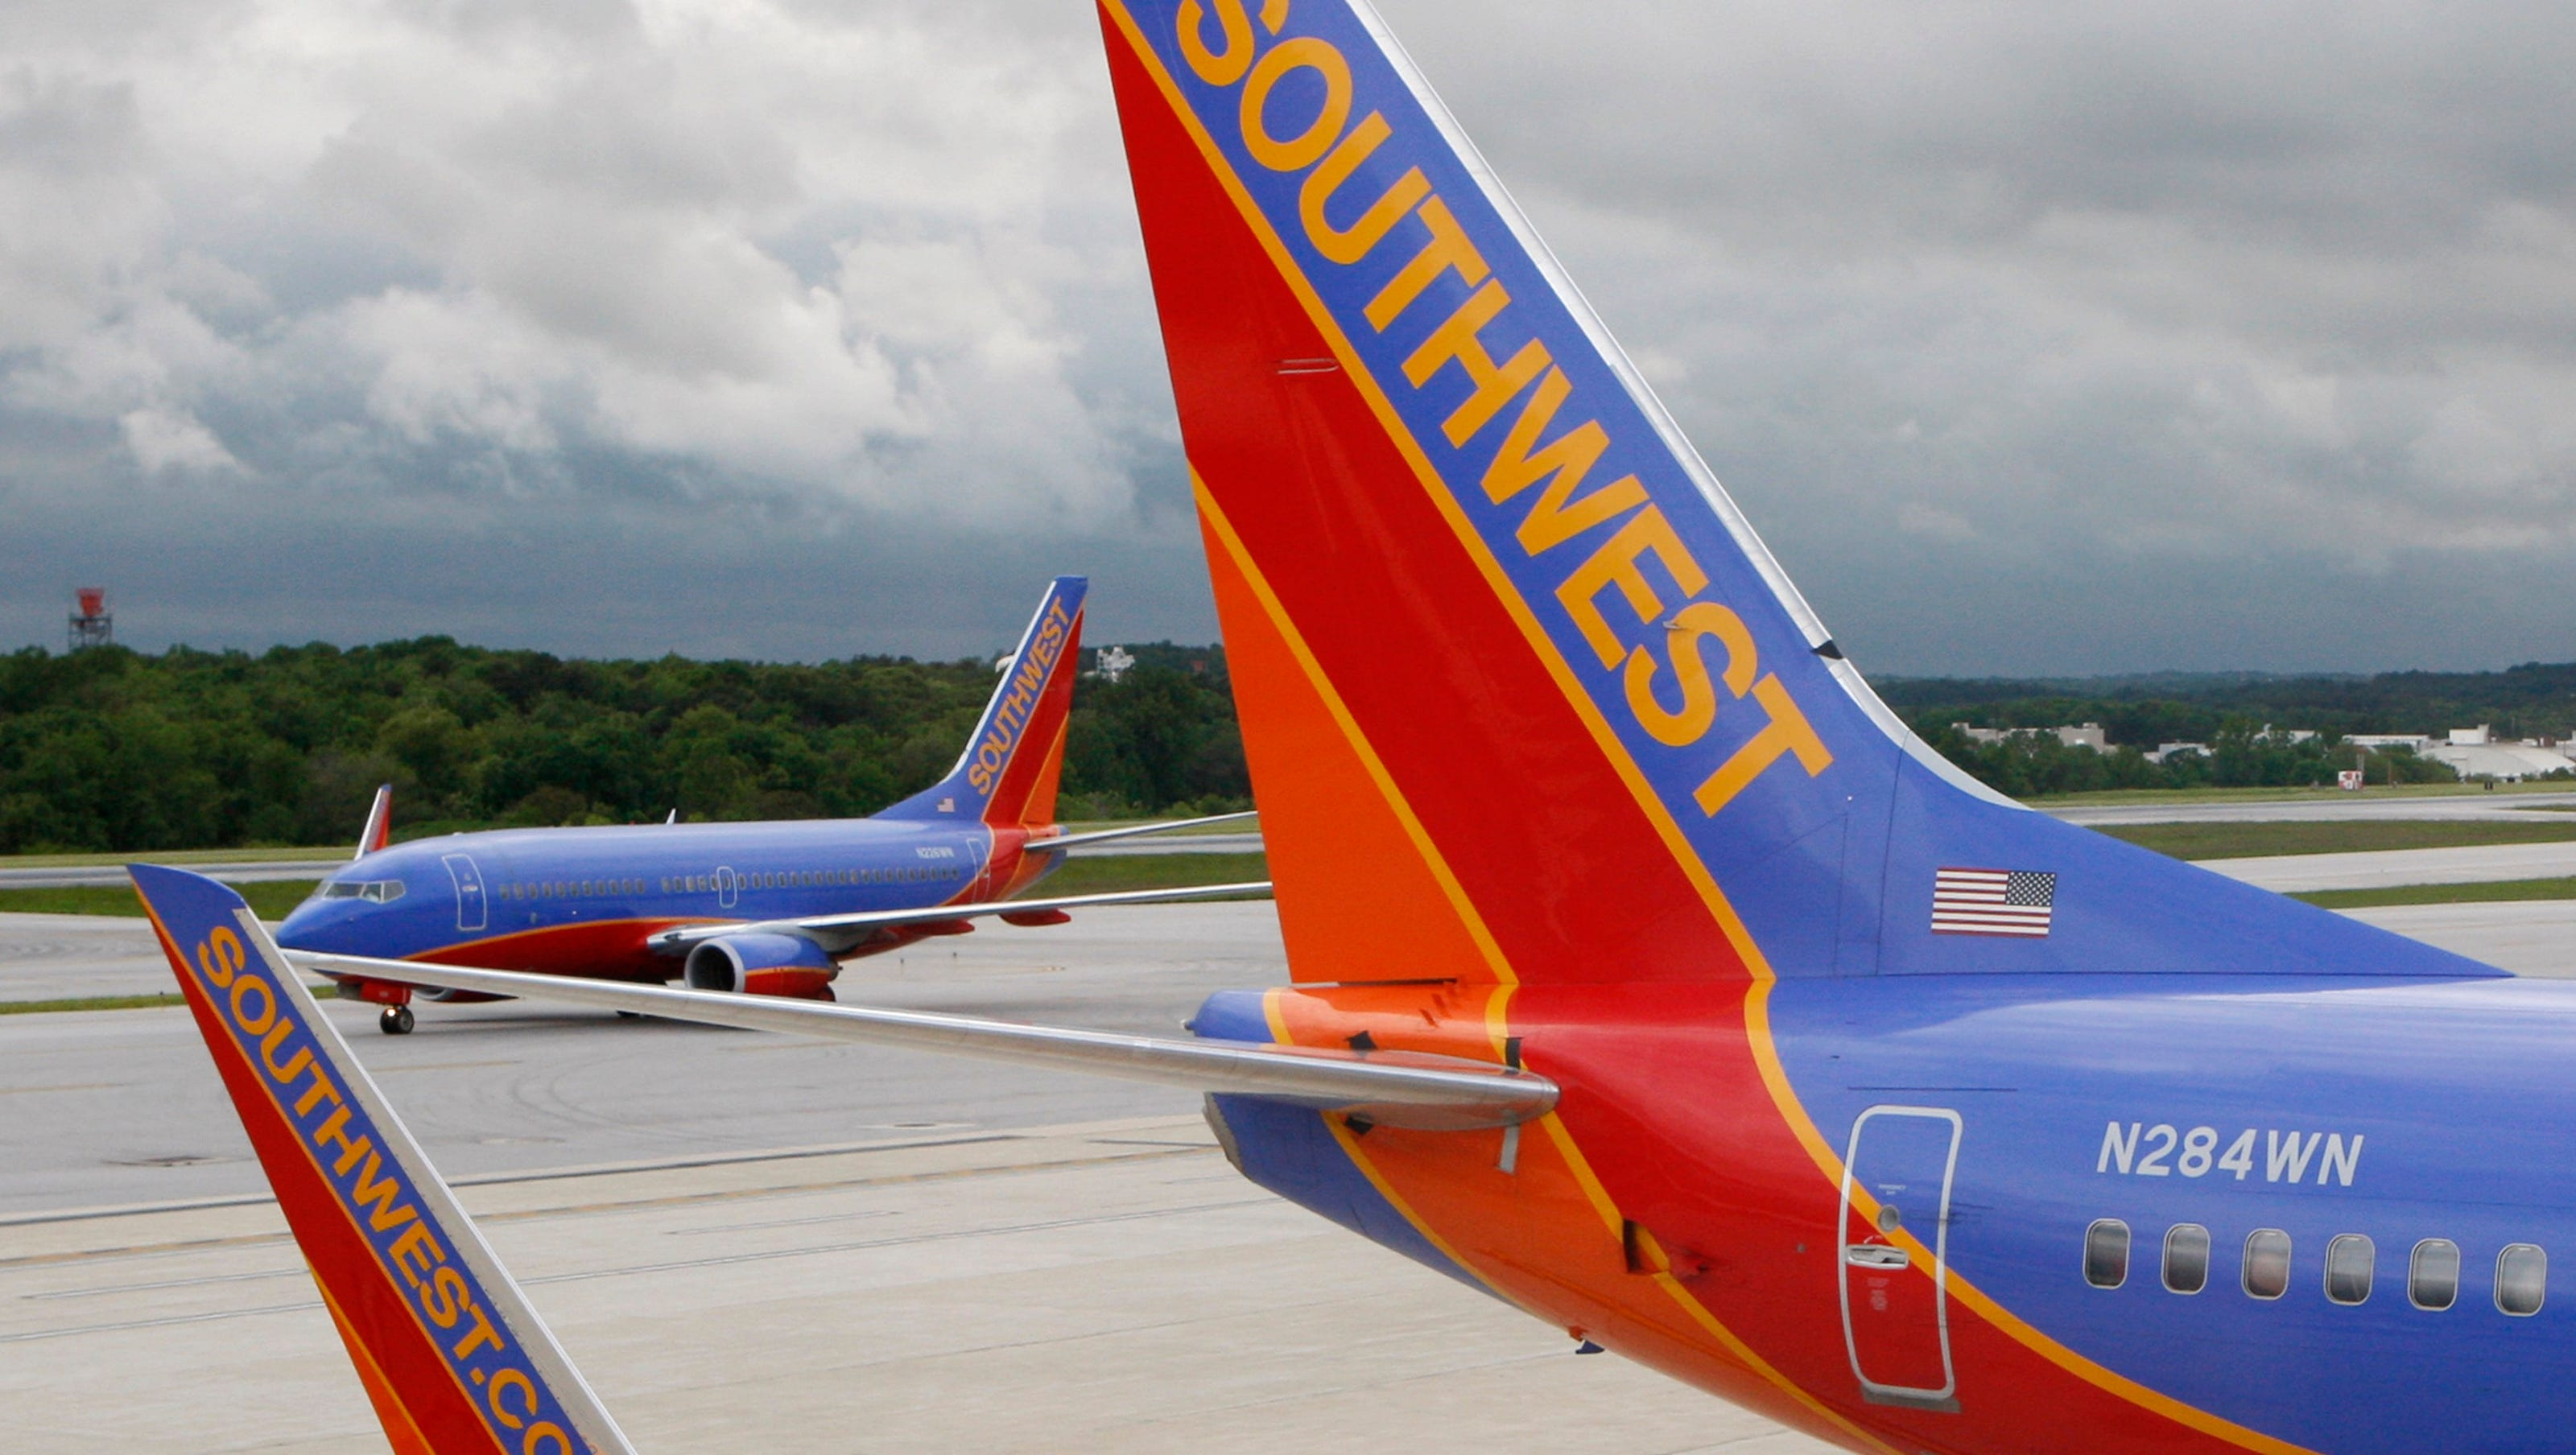 4 days ago· A Southwest plane skidded off the runway Thursday at Hollywood Burbank Airport in southern California. To find out more about Facebook commenting please read the Conversation Guidelines and FAQs.